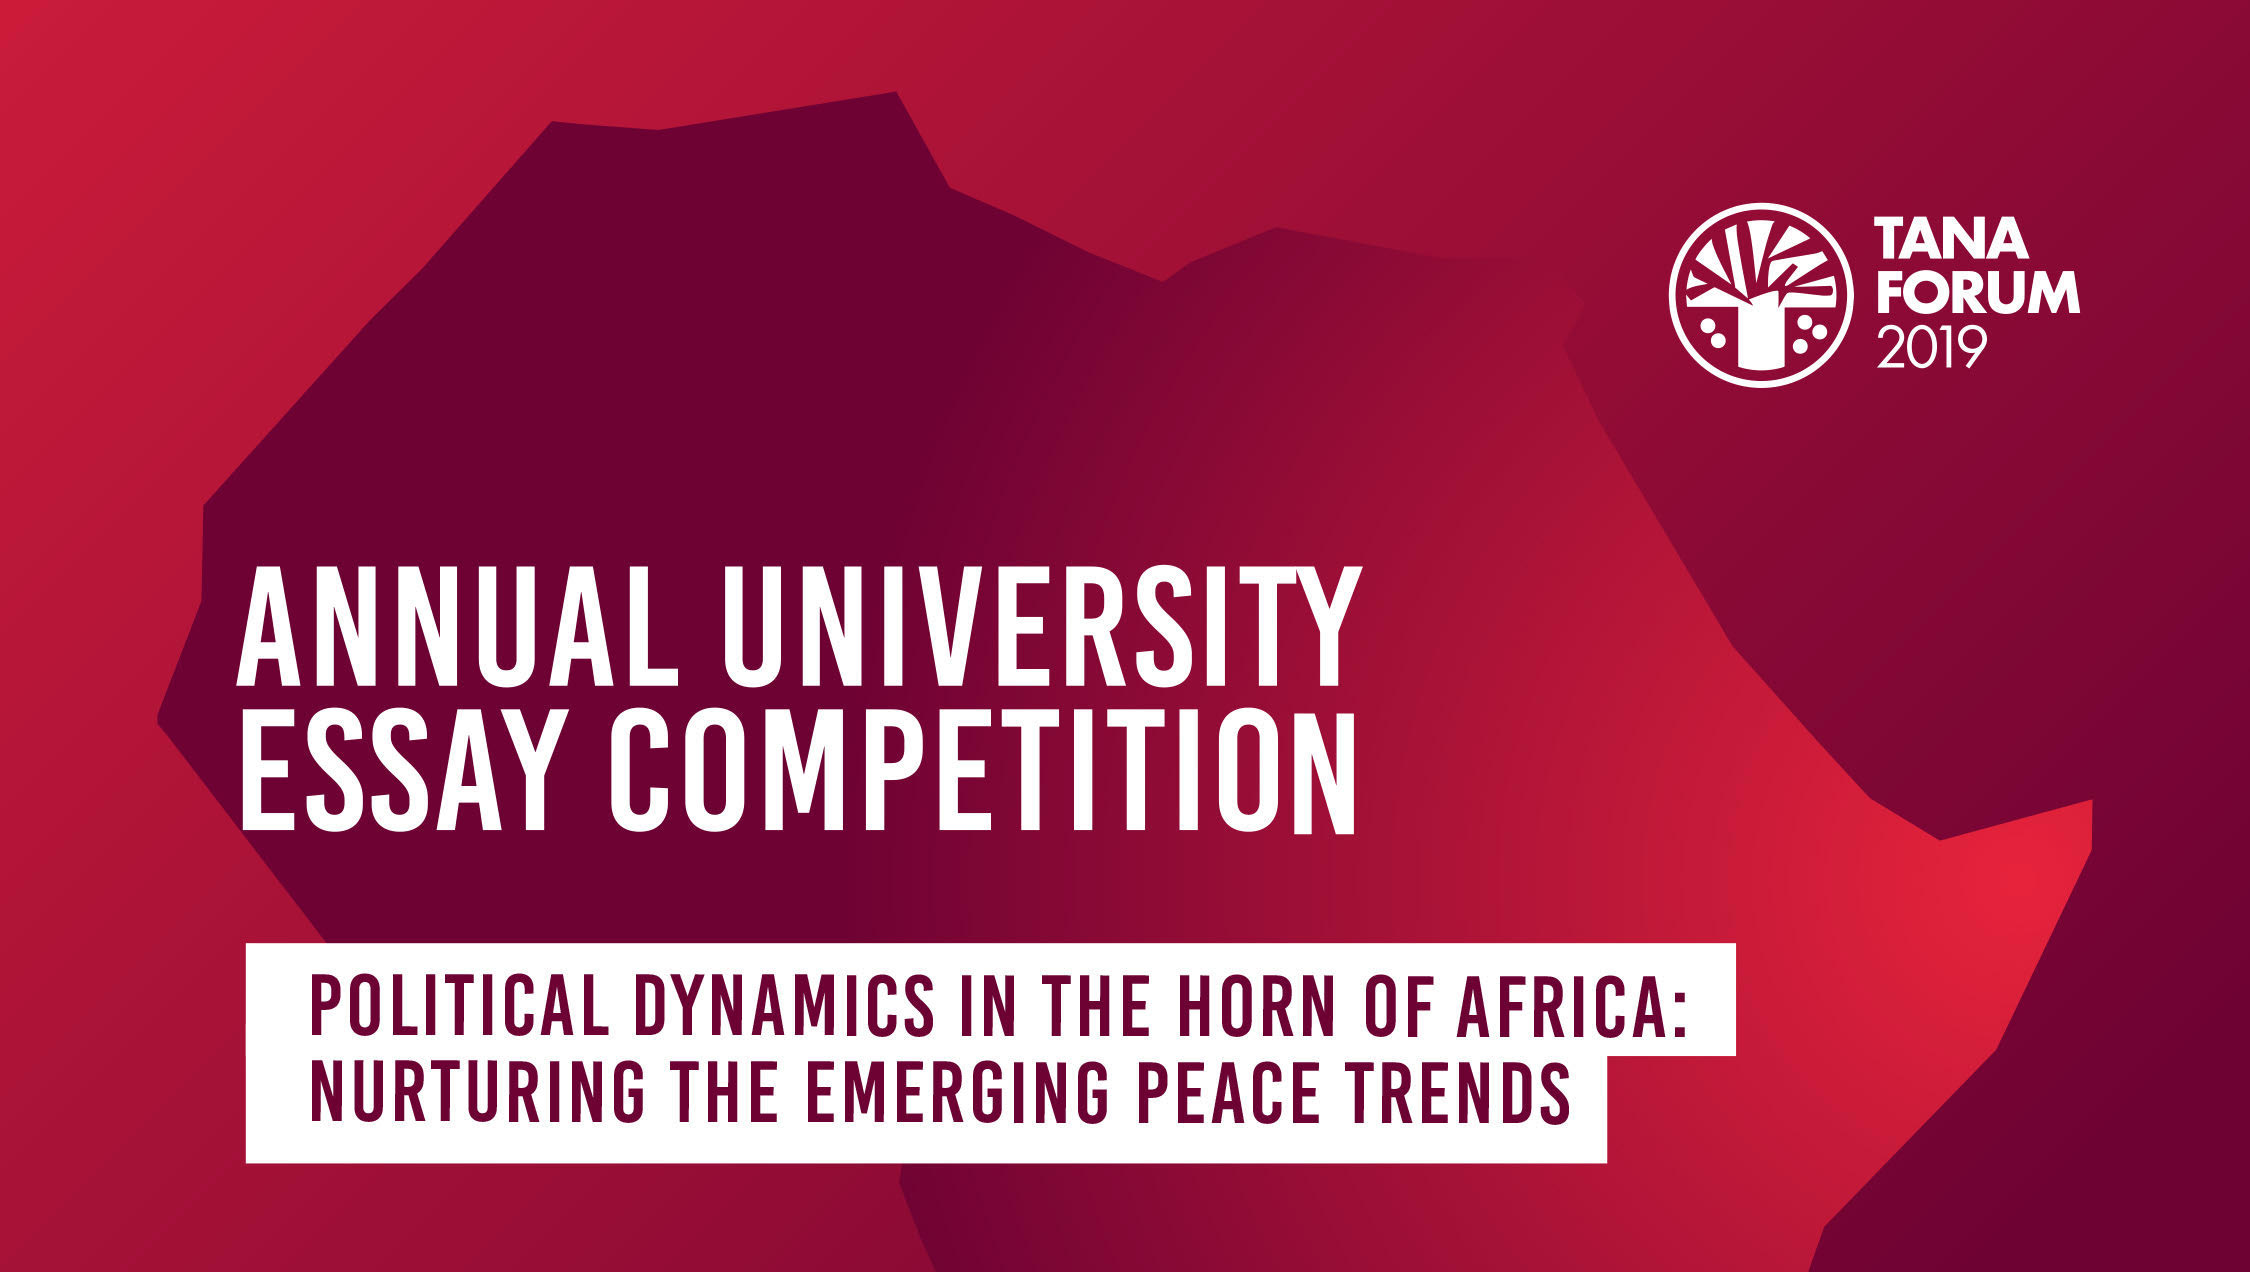 Tana Forum Annual University Essay Competition 2019 for Africans (Fully-funded trip to the Forum in Ethiopia)